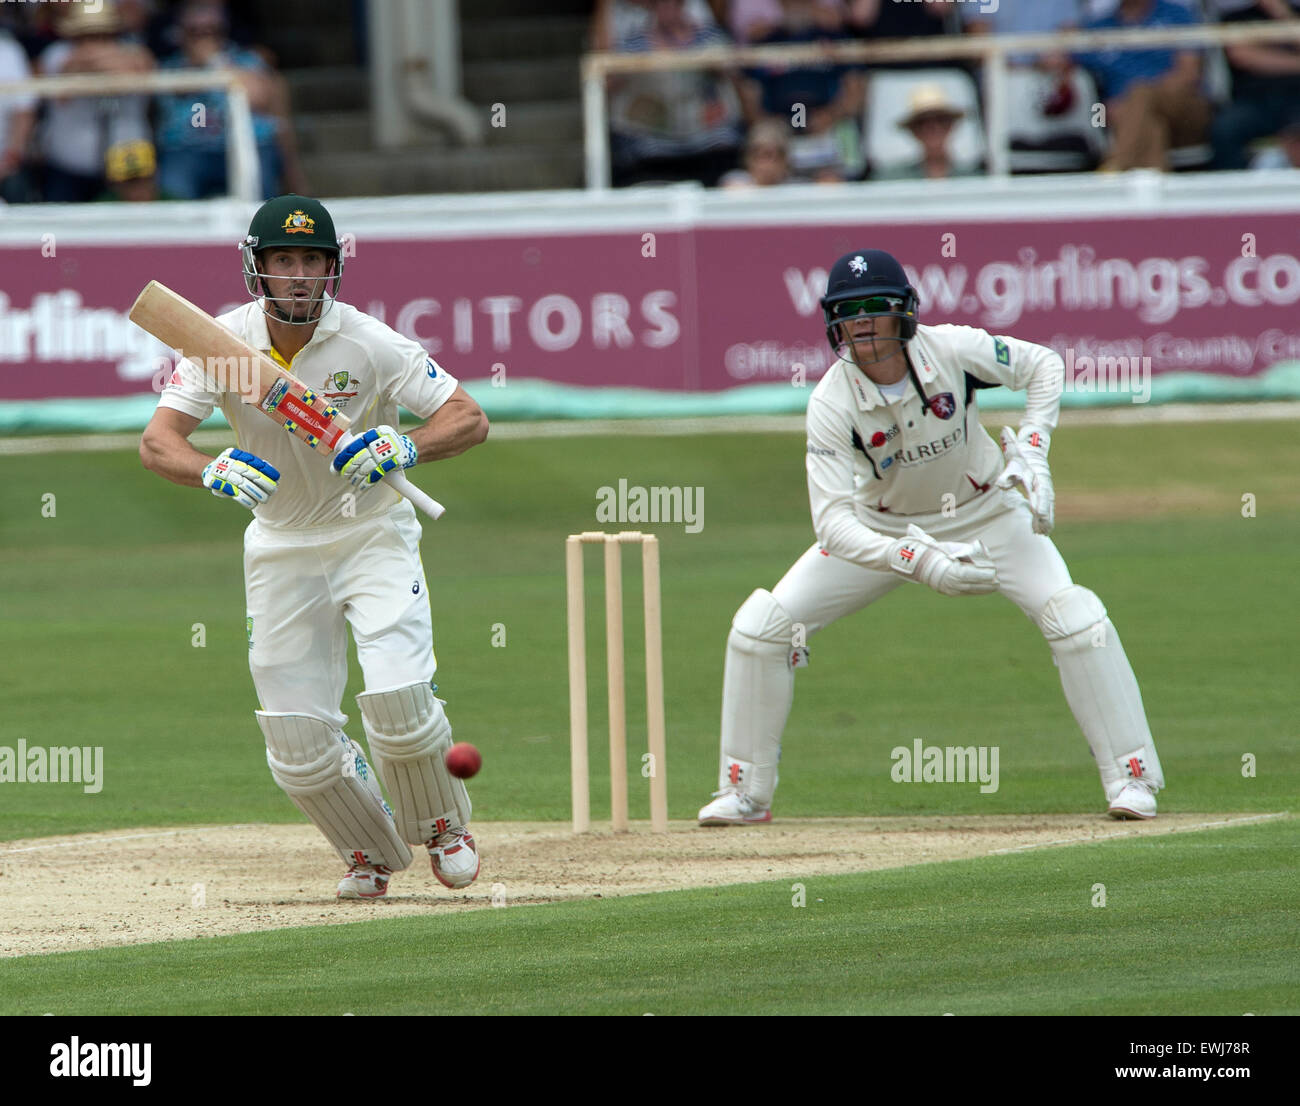 Australia's Shaun Marsh on the opening day of the tour match at the Spitfire Ground, St Lawrence, Canterbury, Kent, - Stock Image